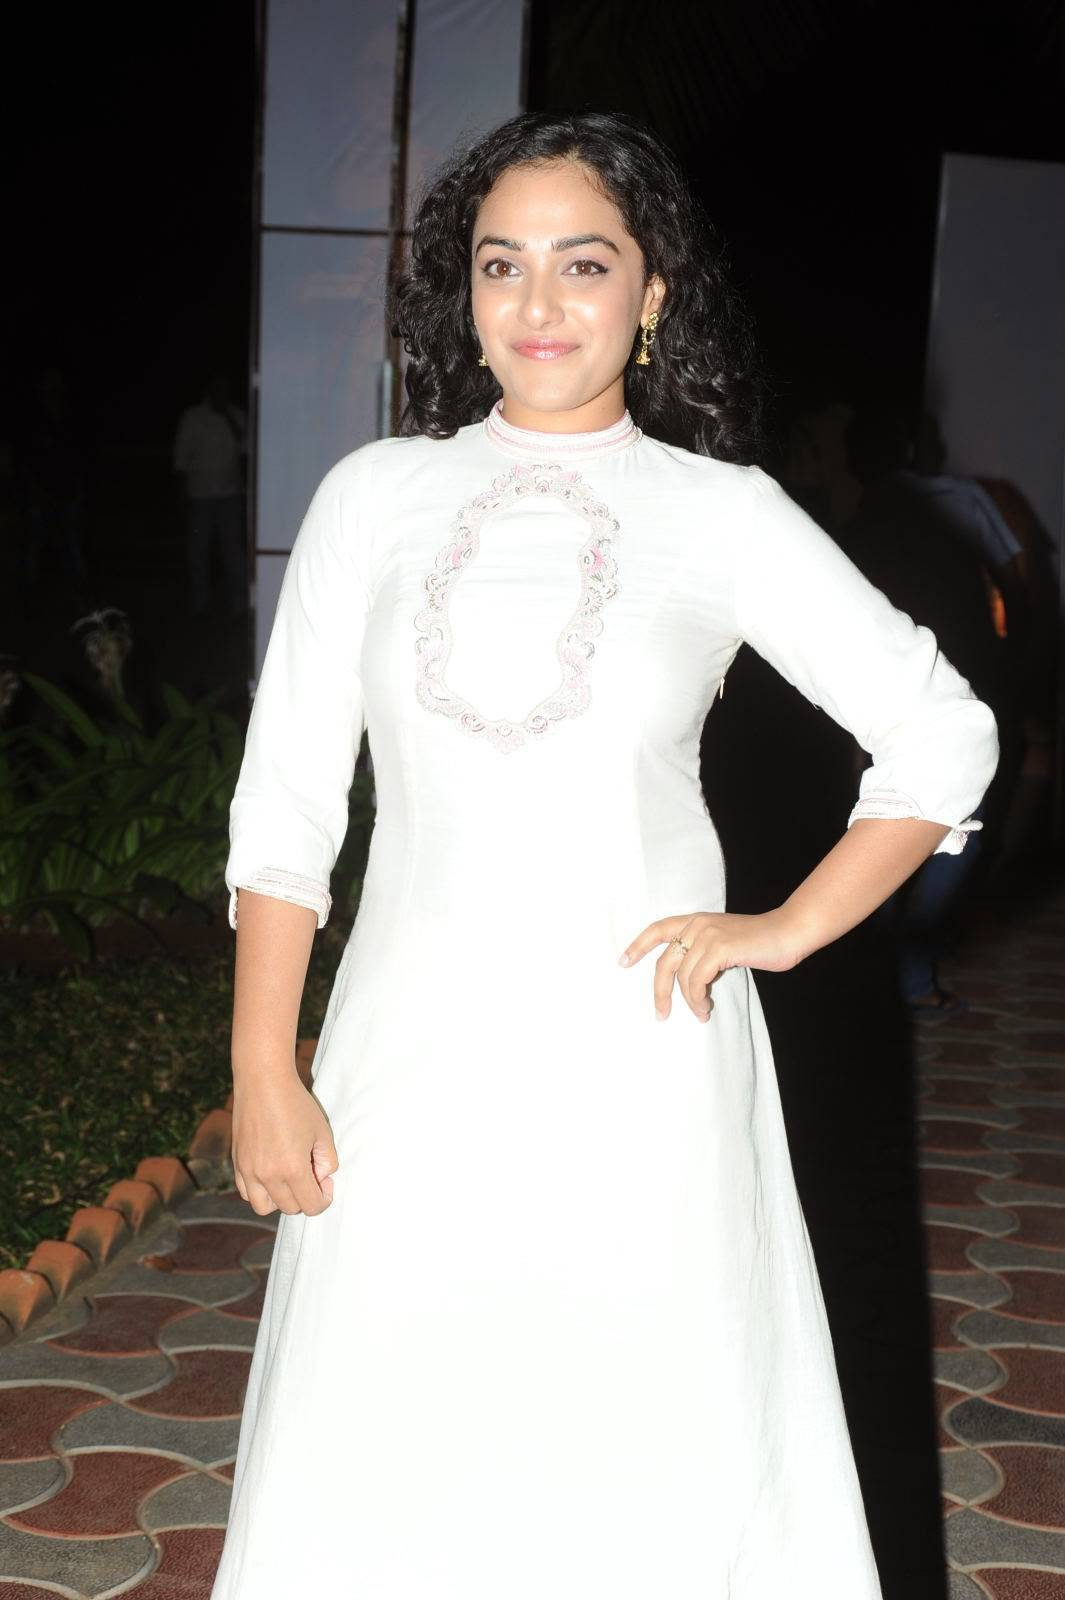 Actress Nithya Menon Stills At Movie Audio Launch In Full White Dress